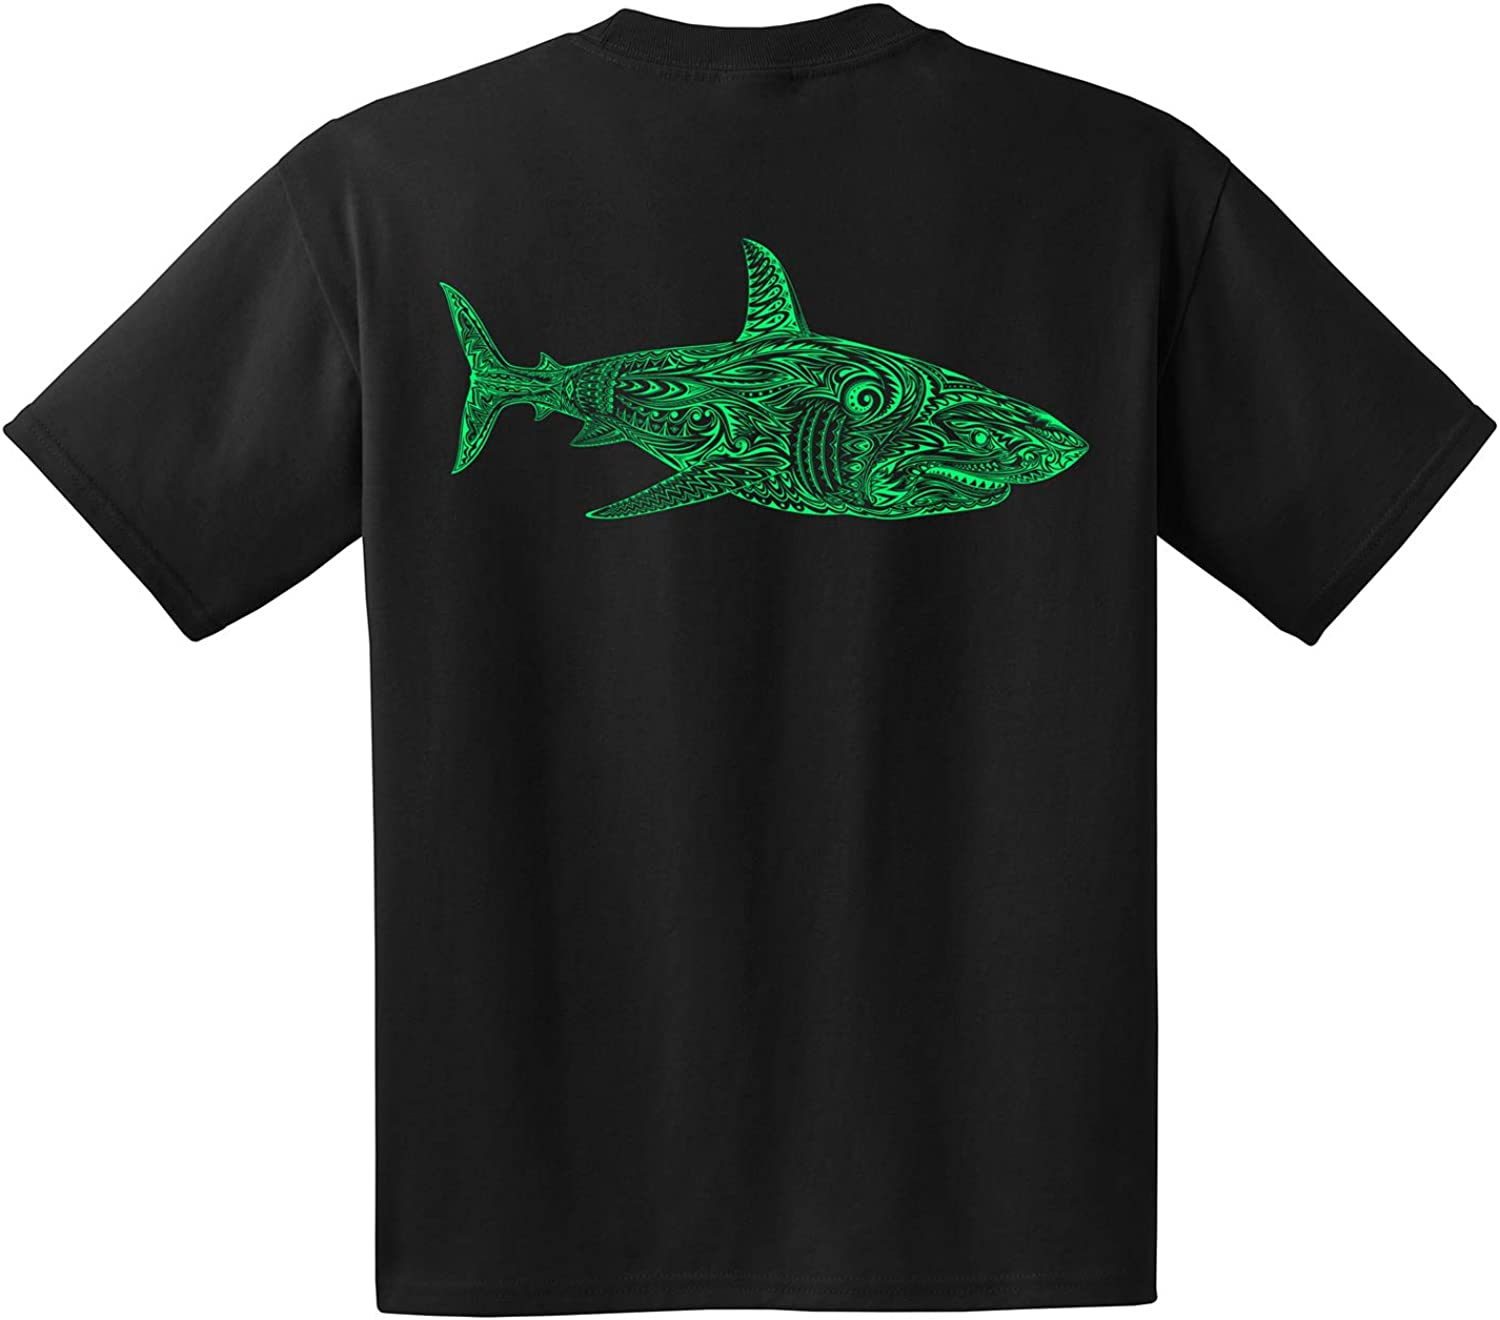 Great White Shark - Made in The USA - Hawaiian Tribal Tattoo Art - Men - Women - Youth - by Scallywag's Cove